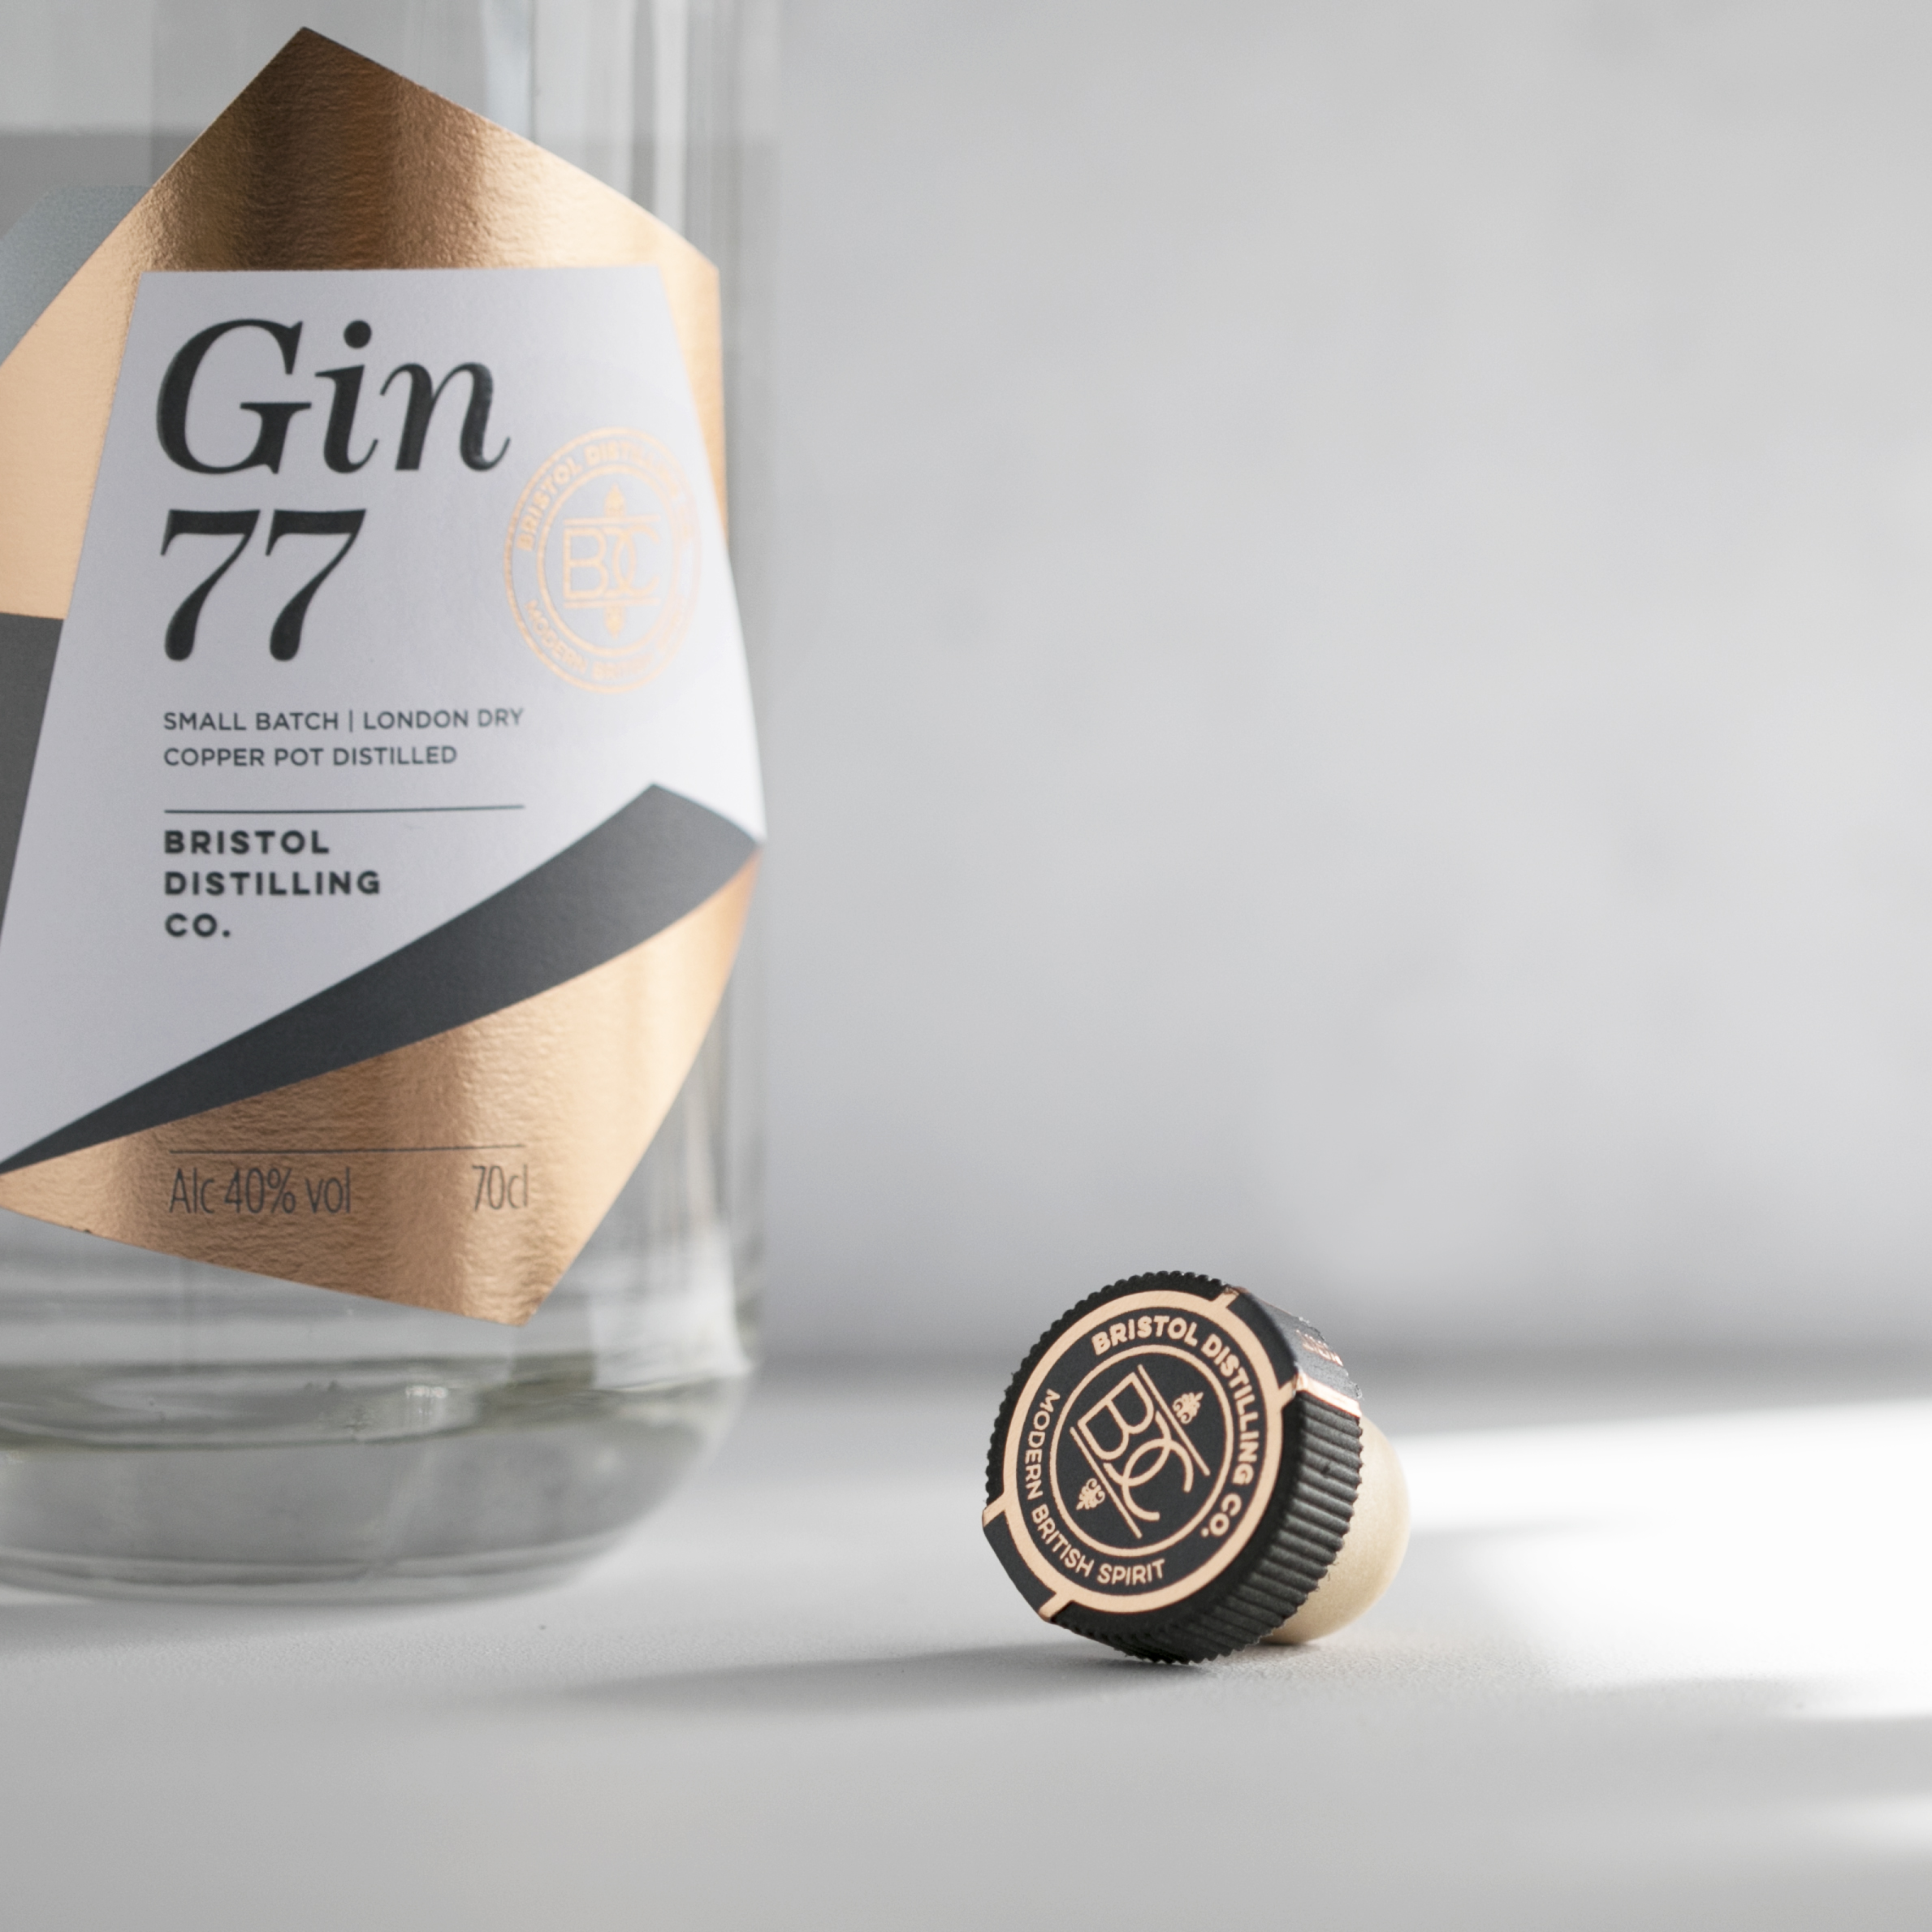 Gin 77 with cork.jpg